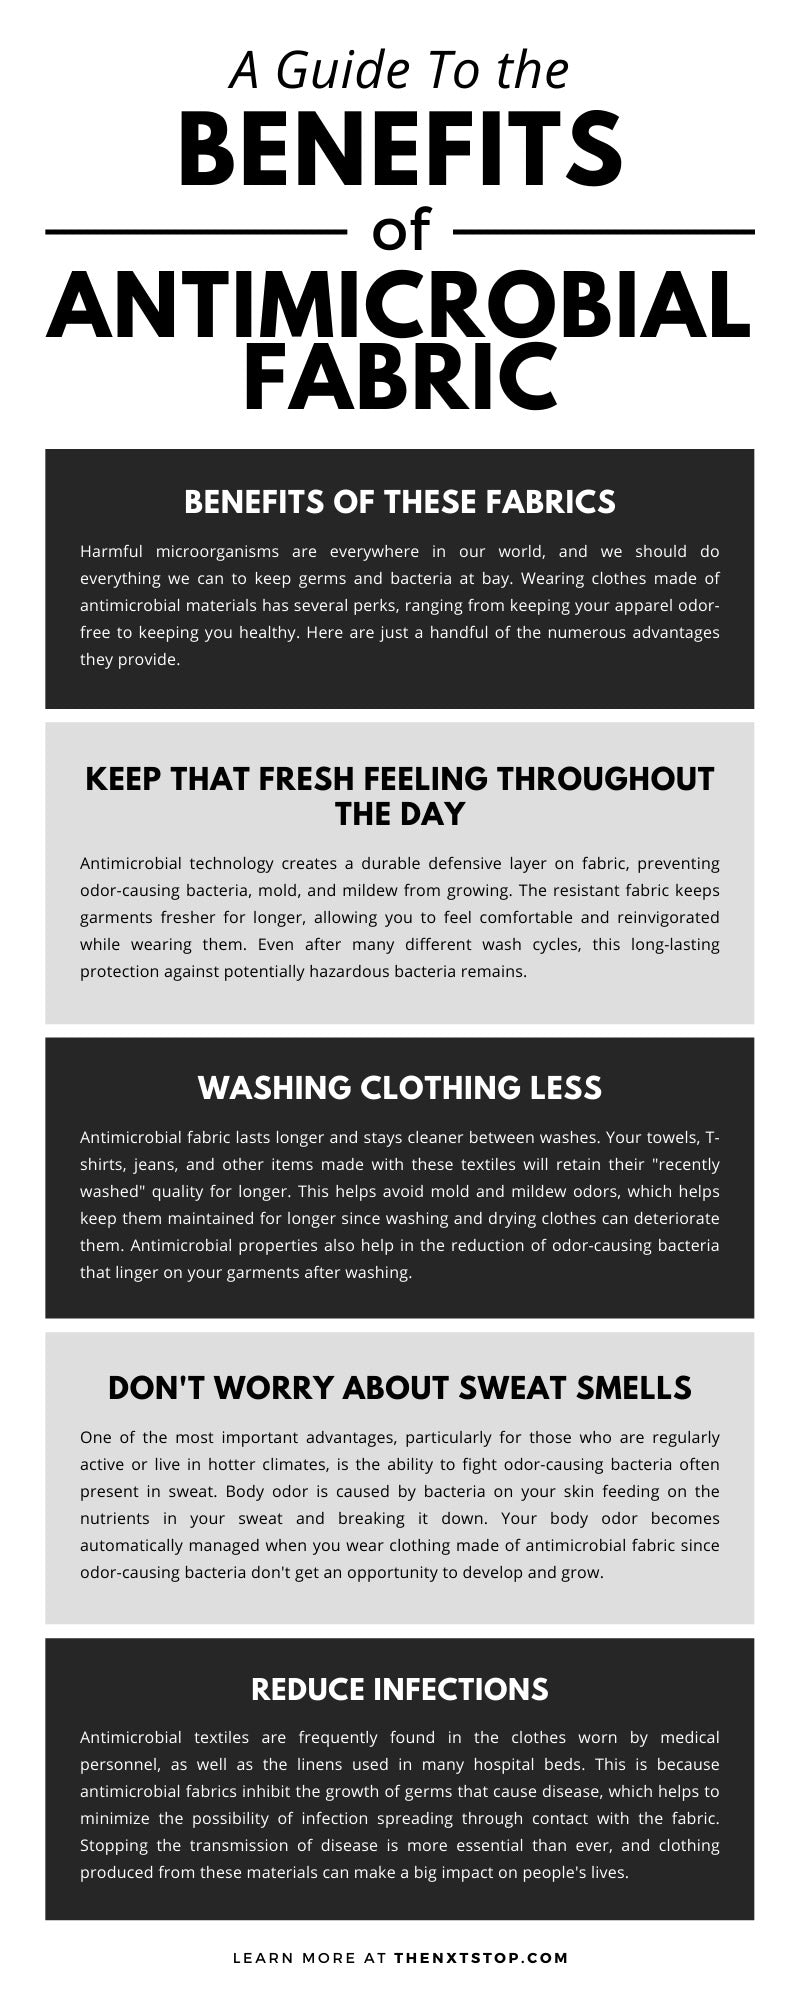 A Guide To the Benefits of Antimicrobial Fabric